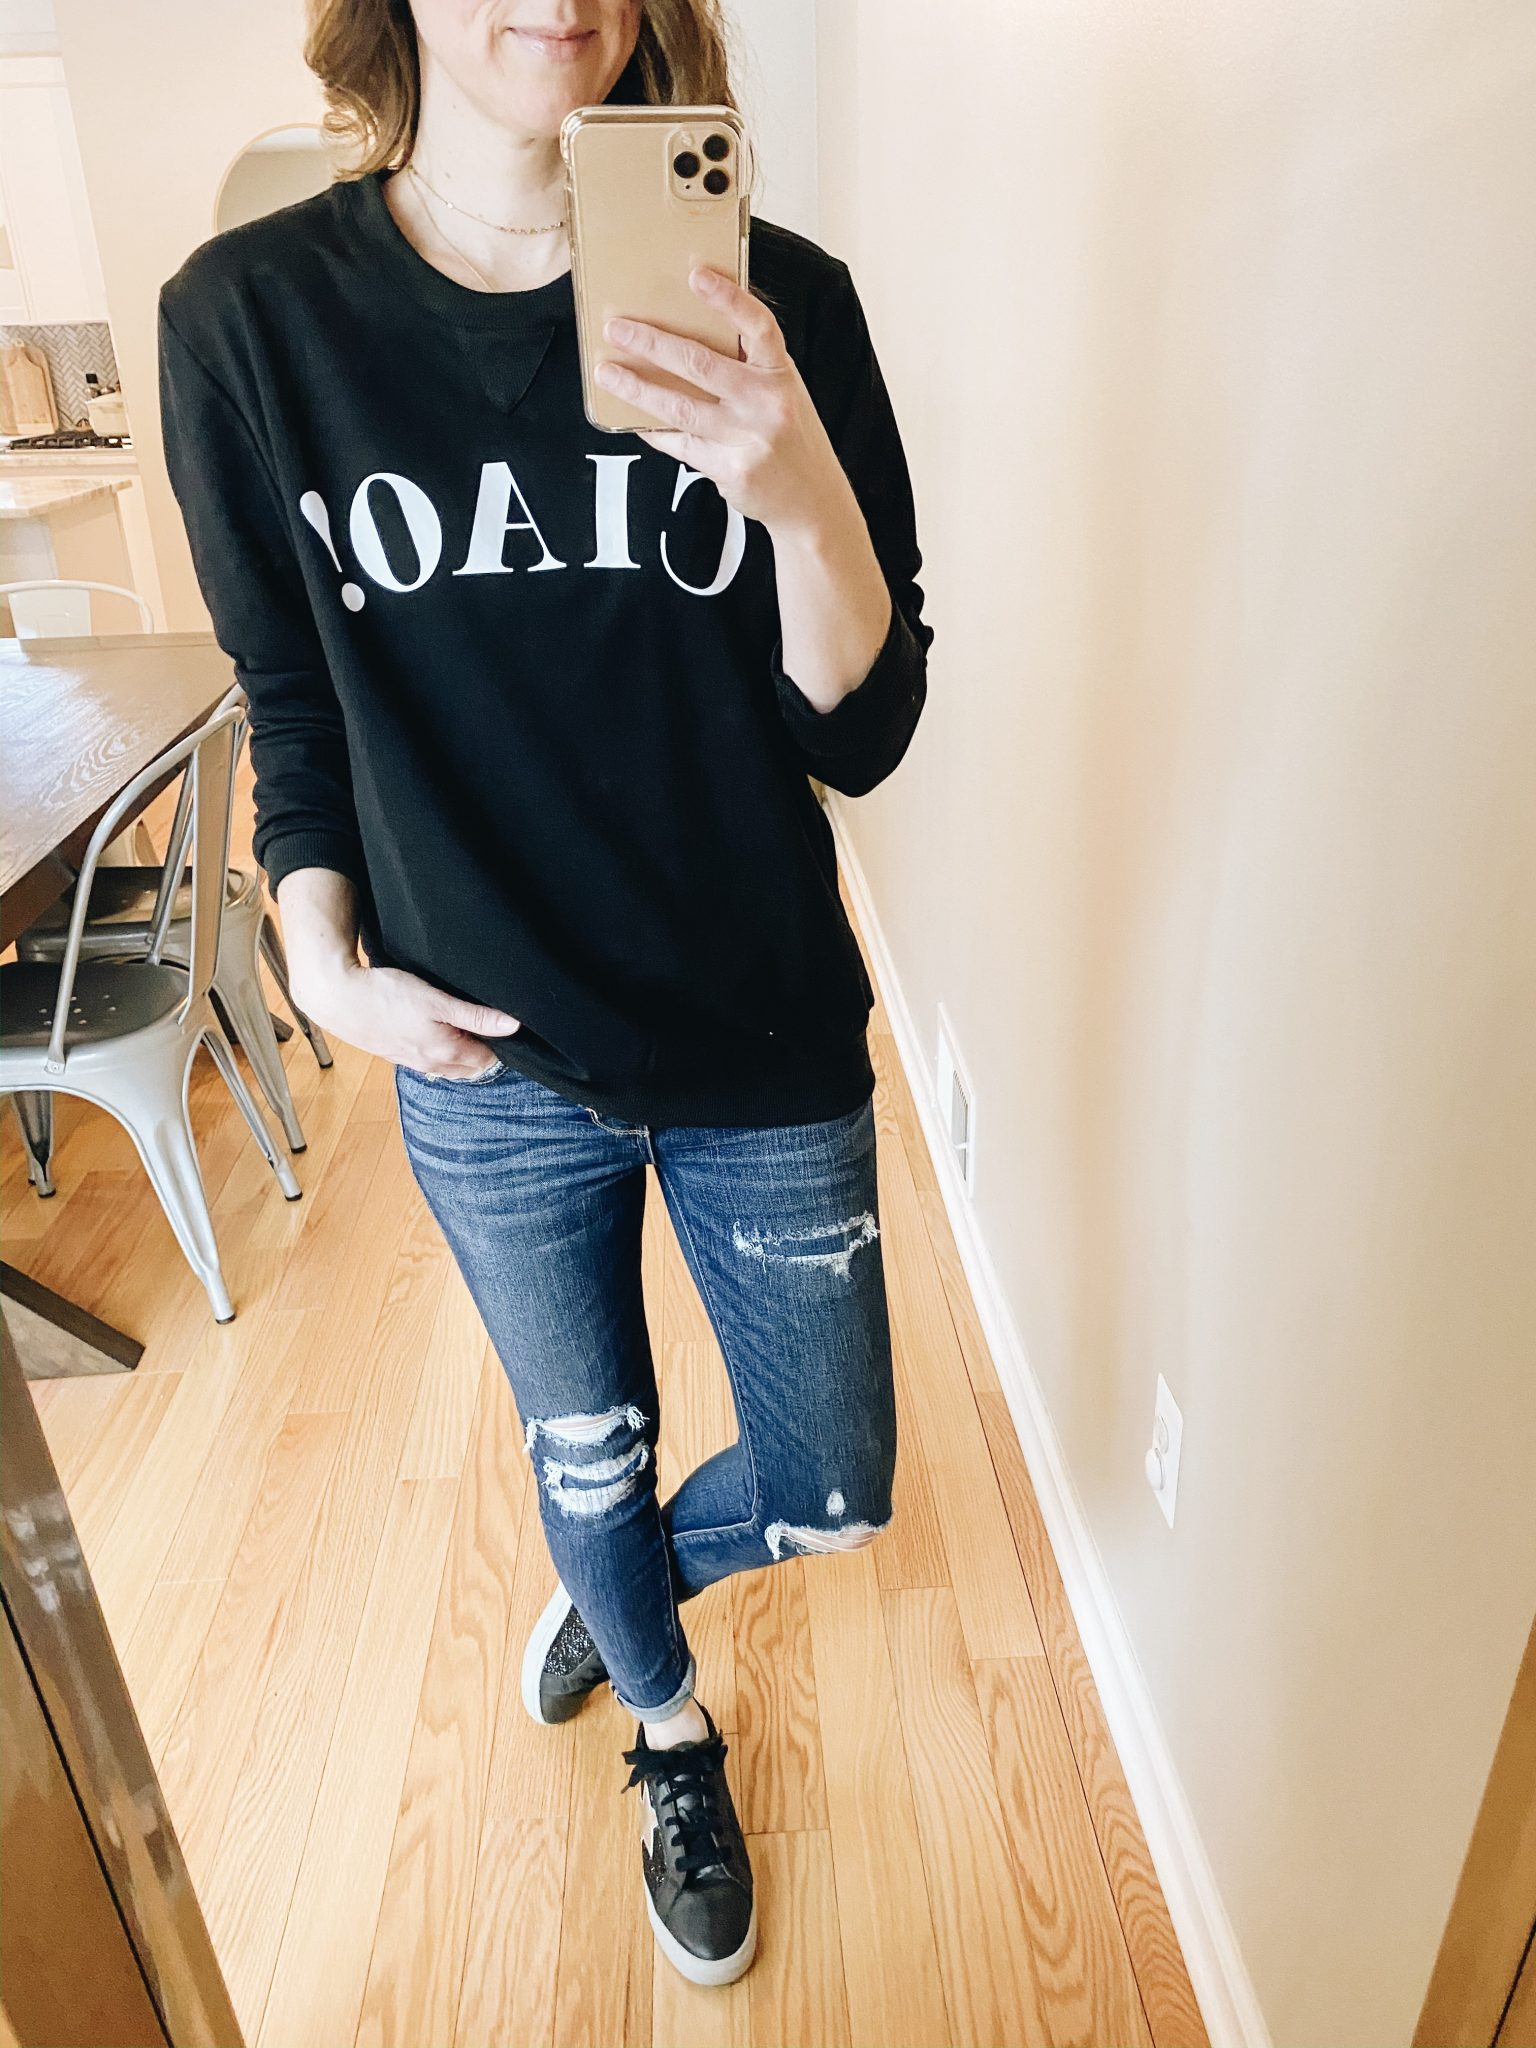 Graphic Sweatshirt Try On | Daily Splendor Life and Style Blog | Ciao sweatshirt #momlife #momstyle #casualstyle #springstyle #springfashion